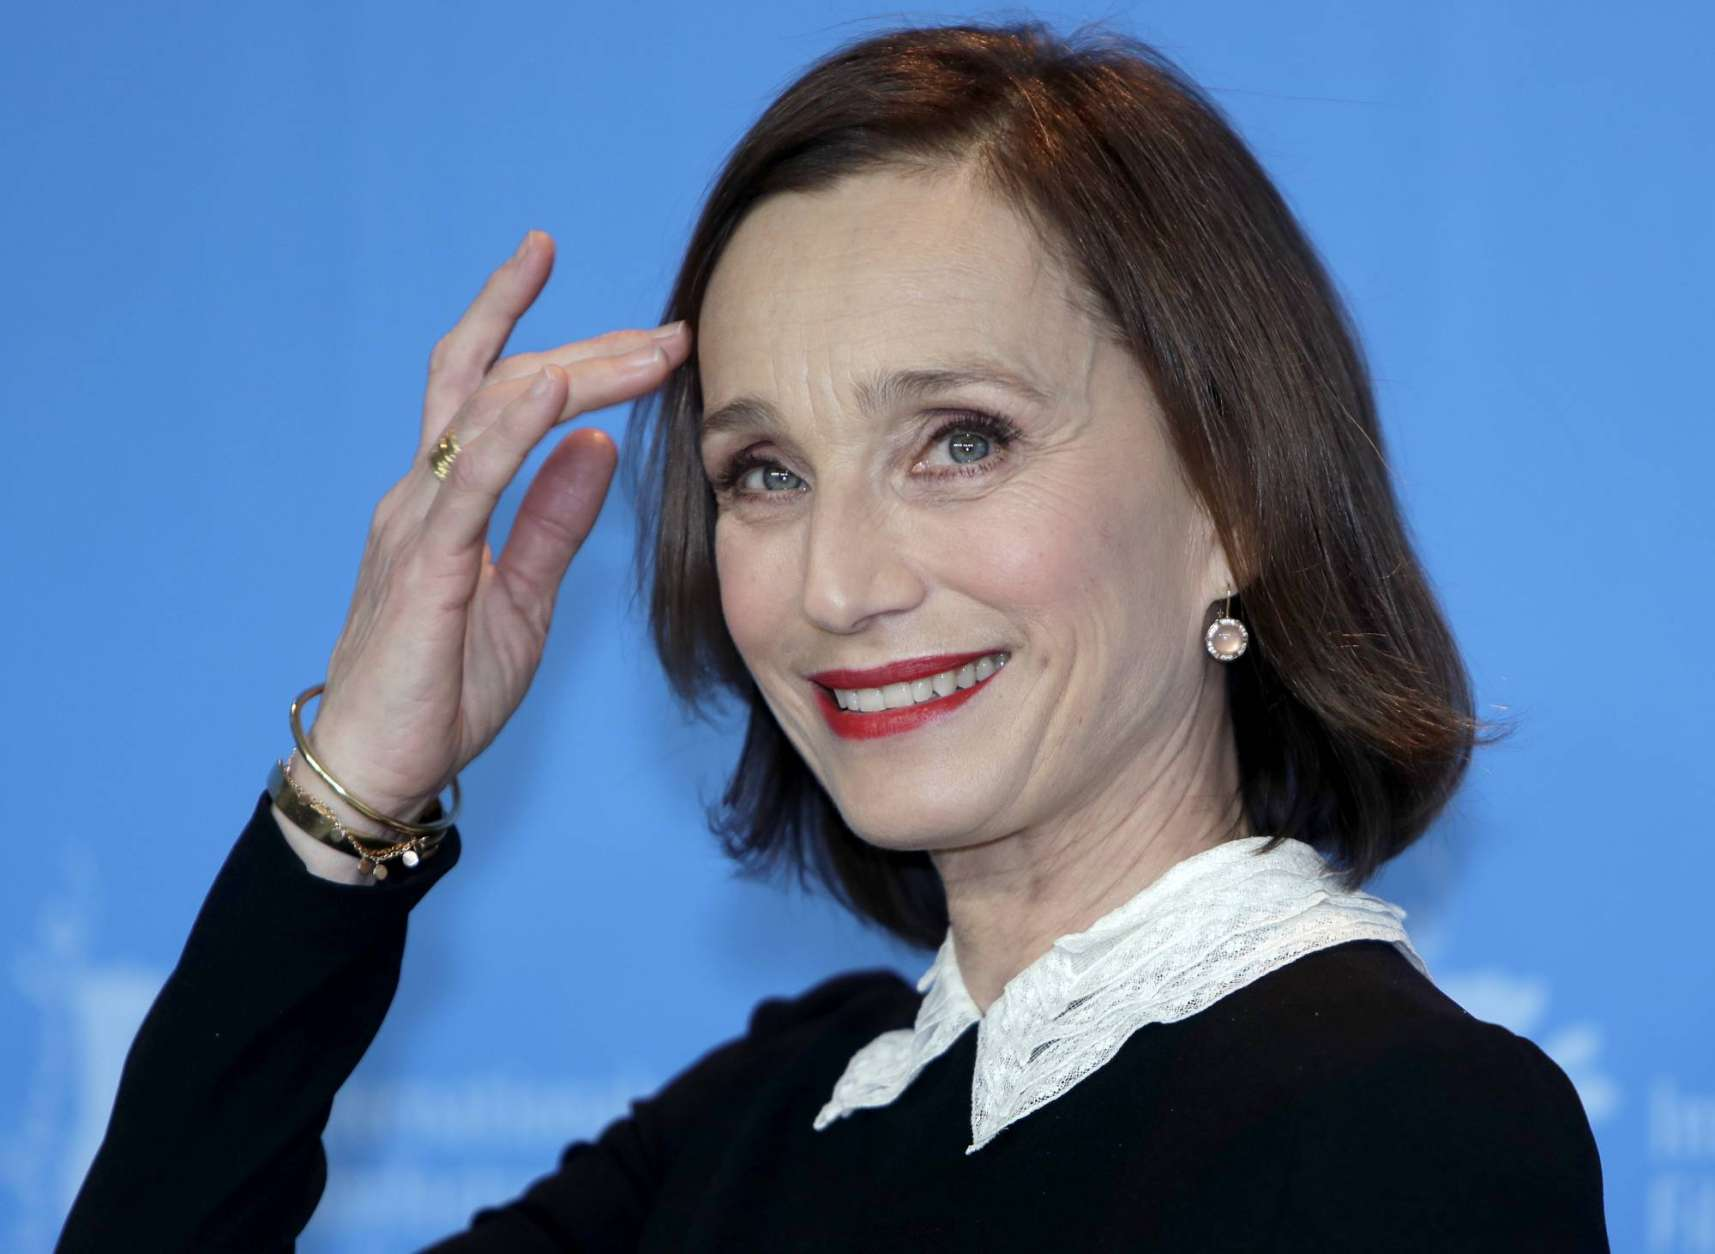 Actress Kristin Scott Thomas pose for the photographers during a photo call for the film 'The Party' at the 2017 Berlinale Film Festival in Berlin, Germany, Monday, Feb. 13, 2017. (AP Photo/Michael Sohn)